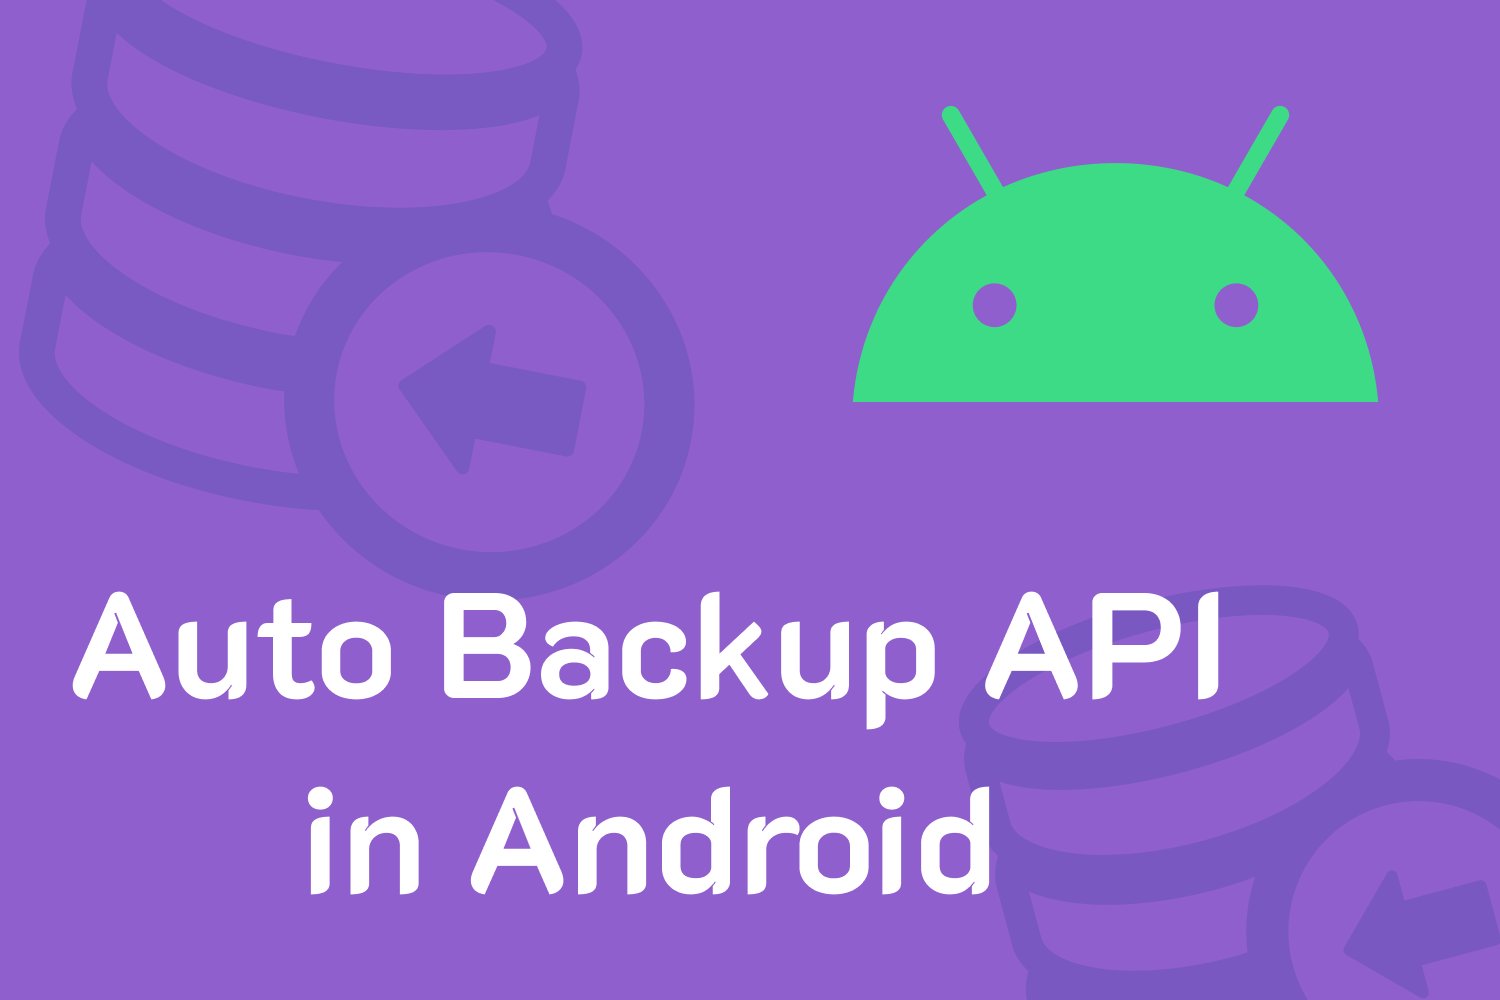 Auto Backup API in Android